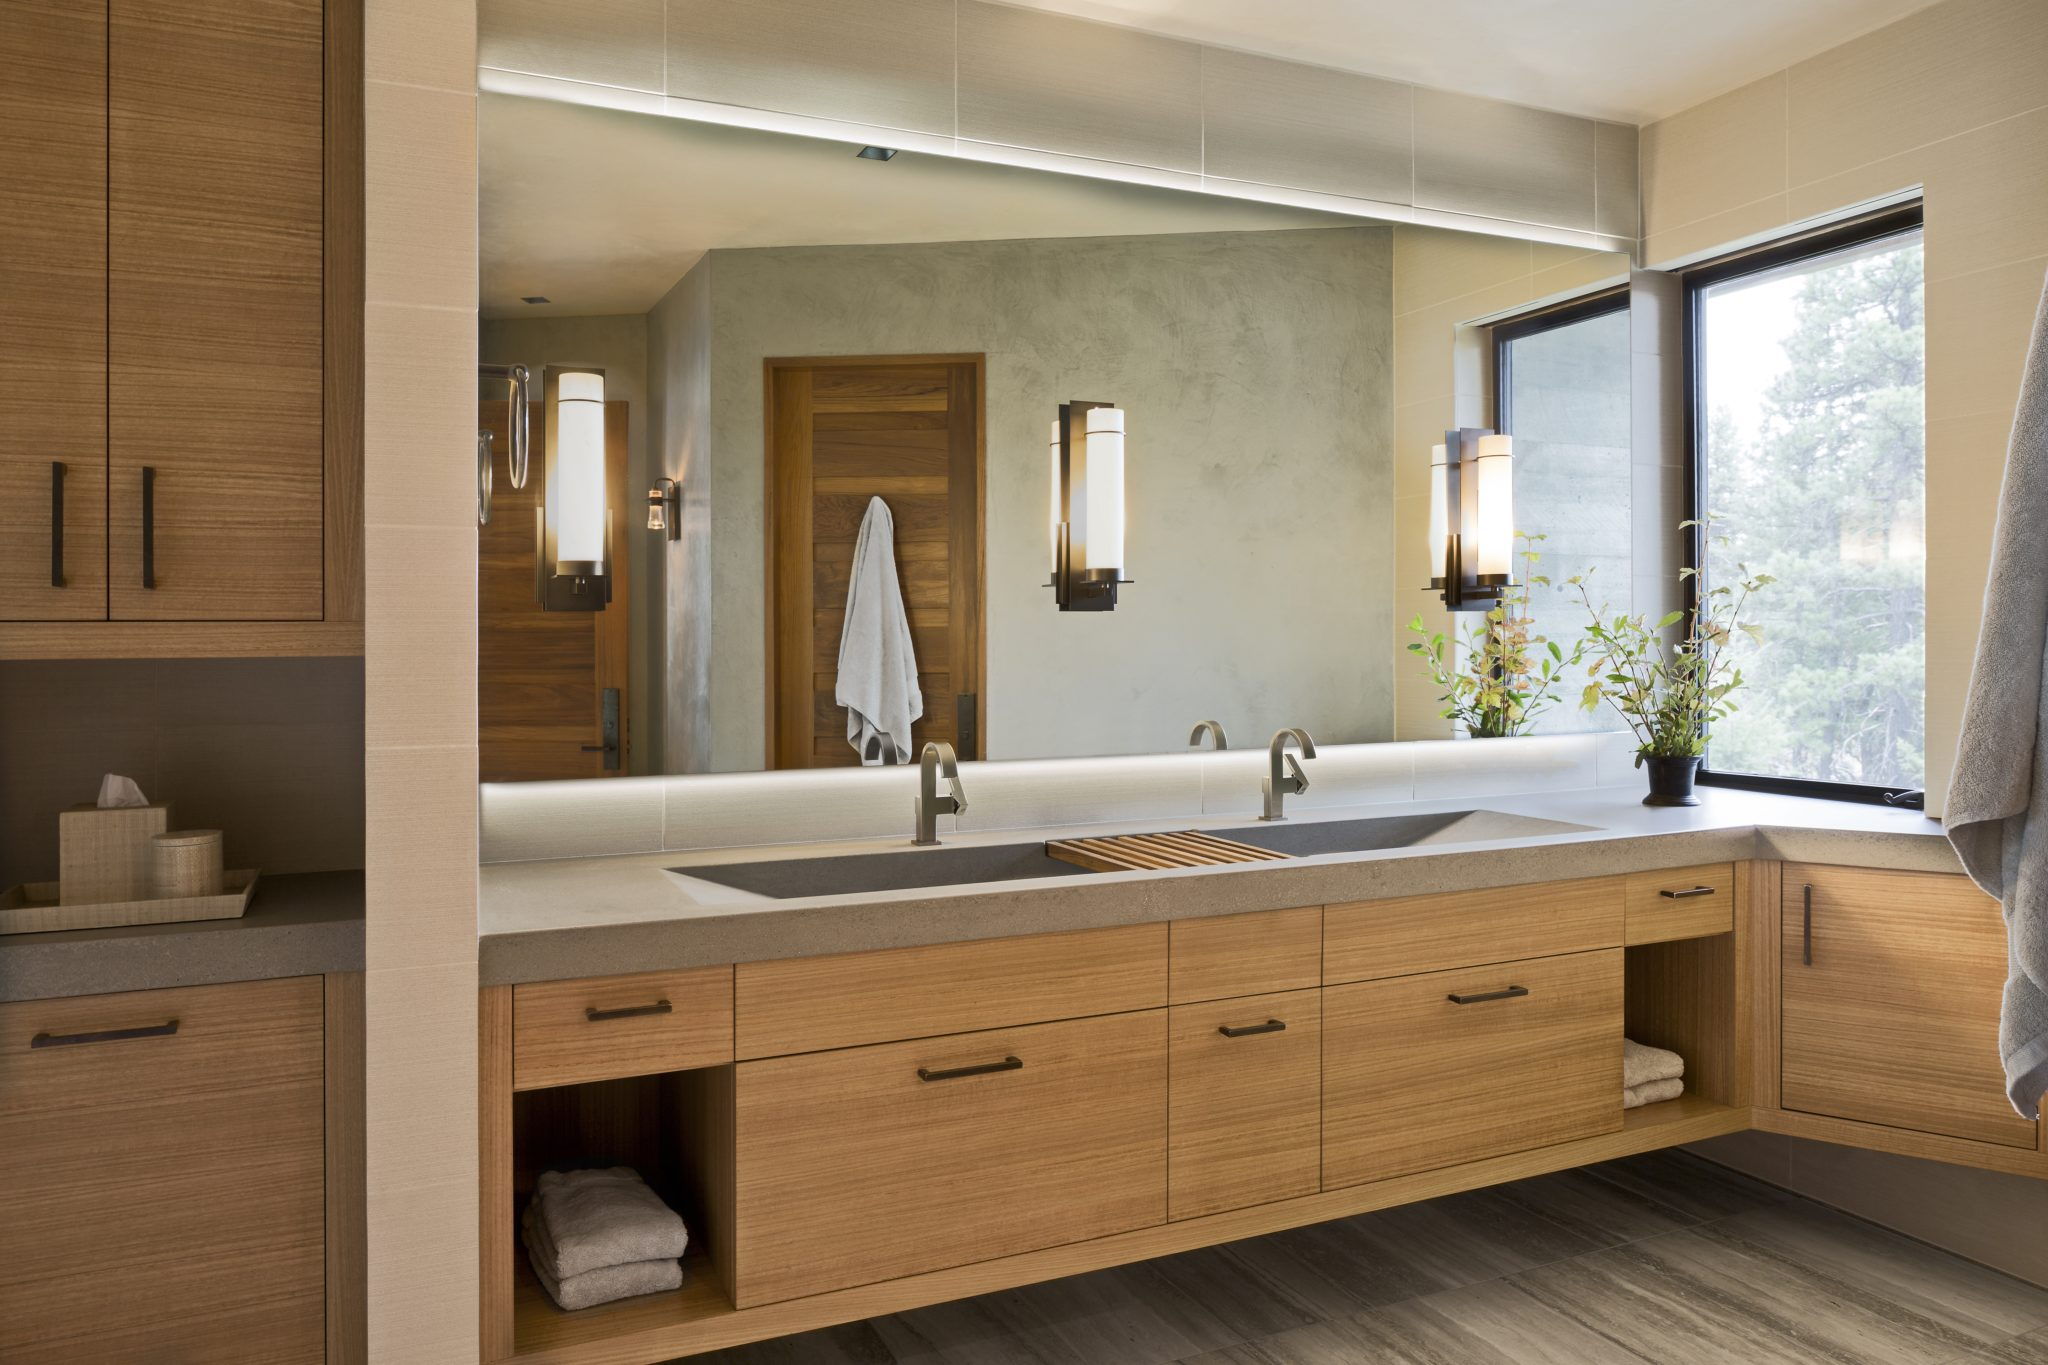 Concrete trough sink functions for a family bathroom in avacation home. By Brown Design Group